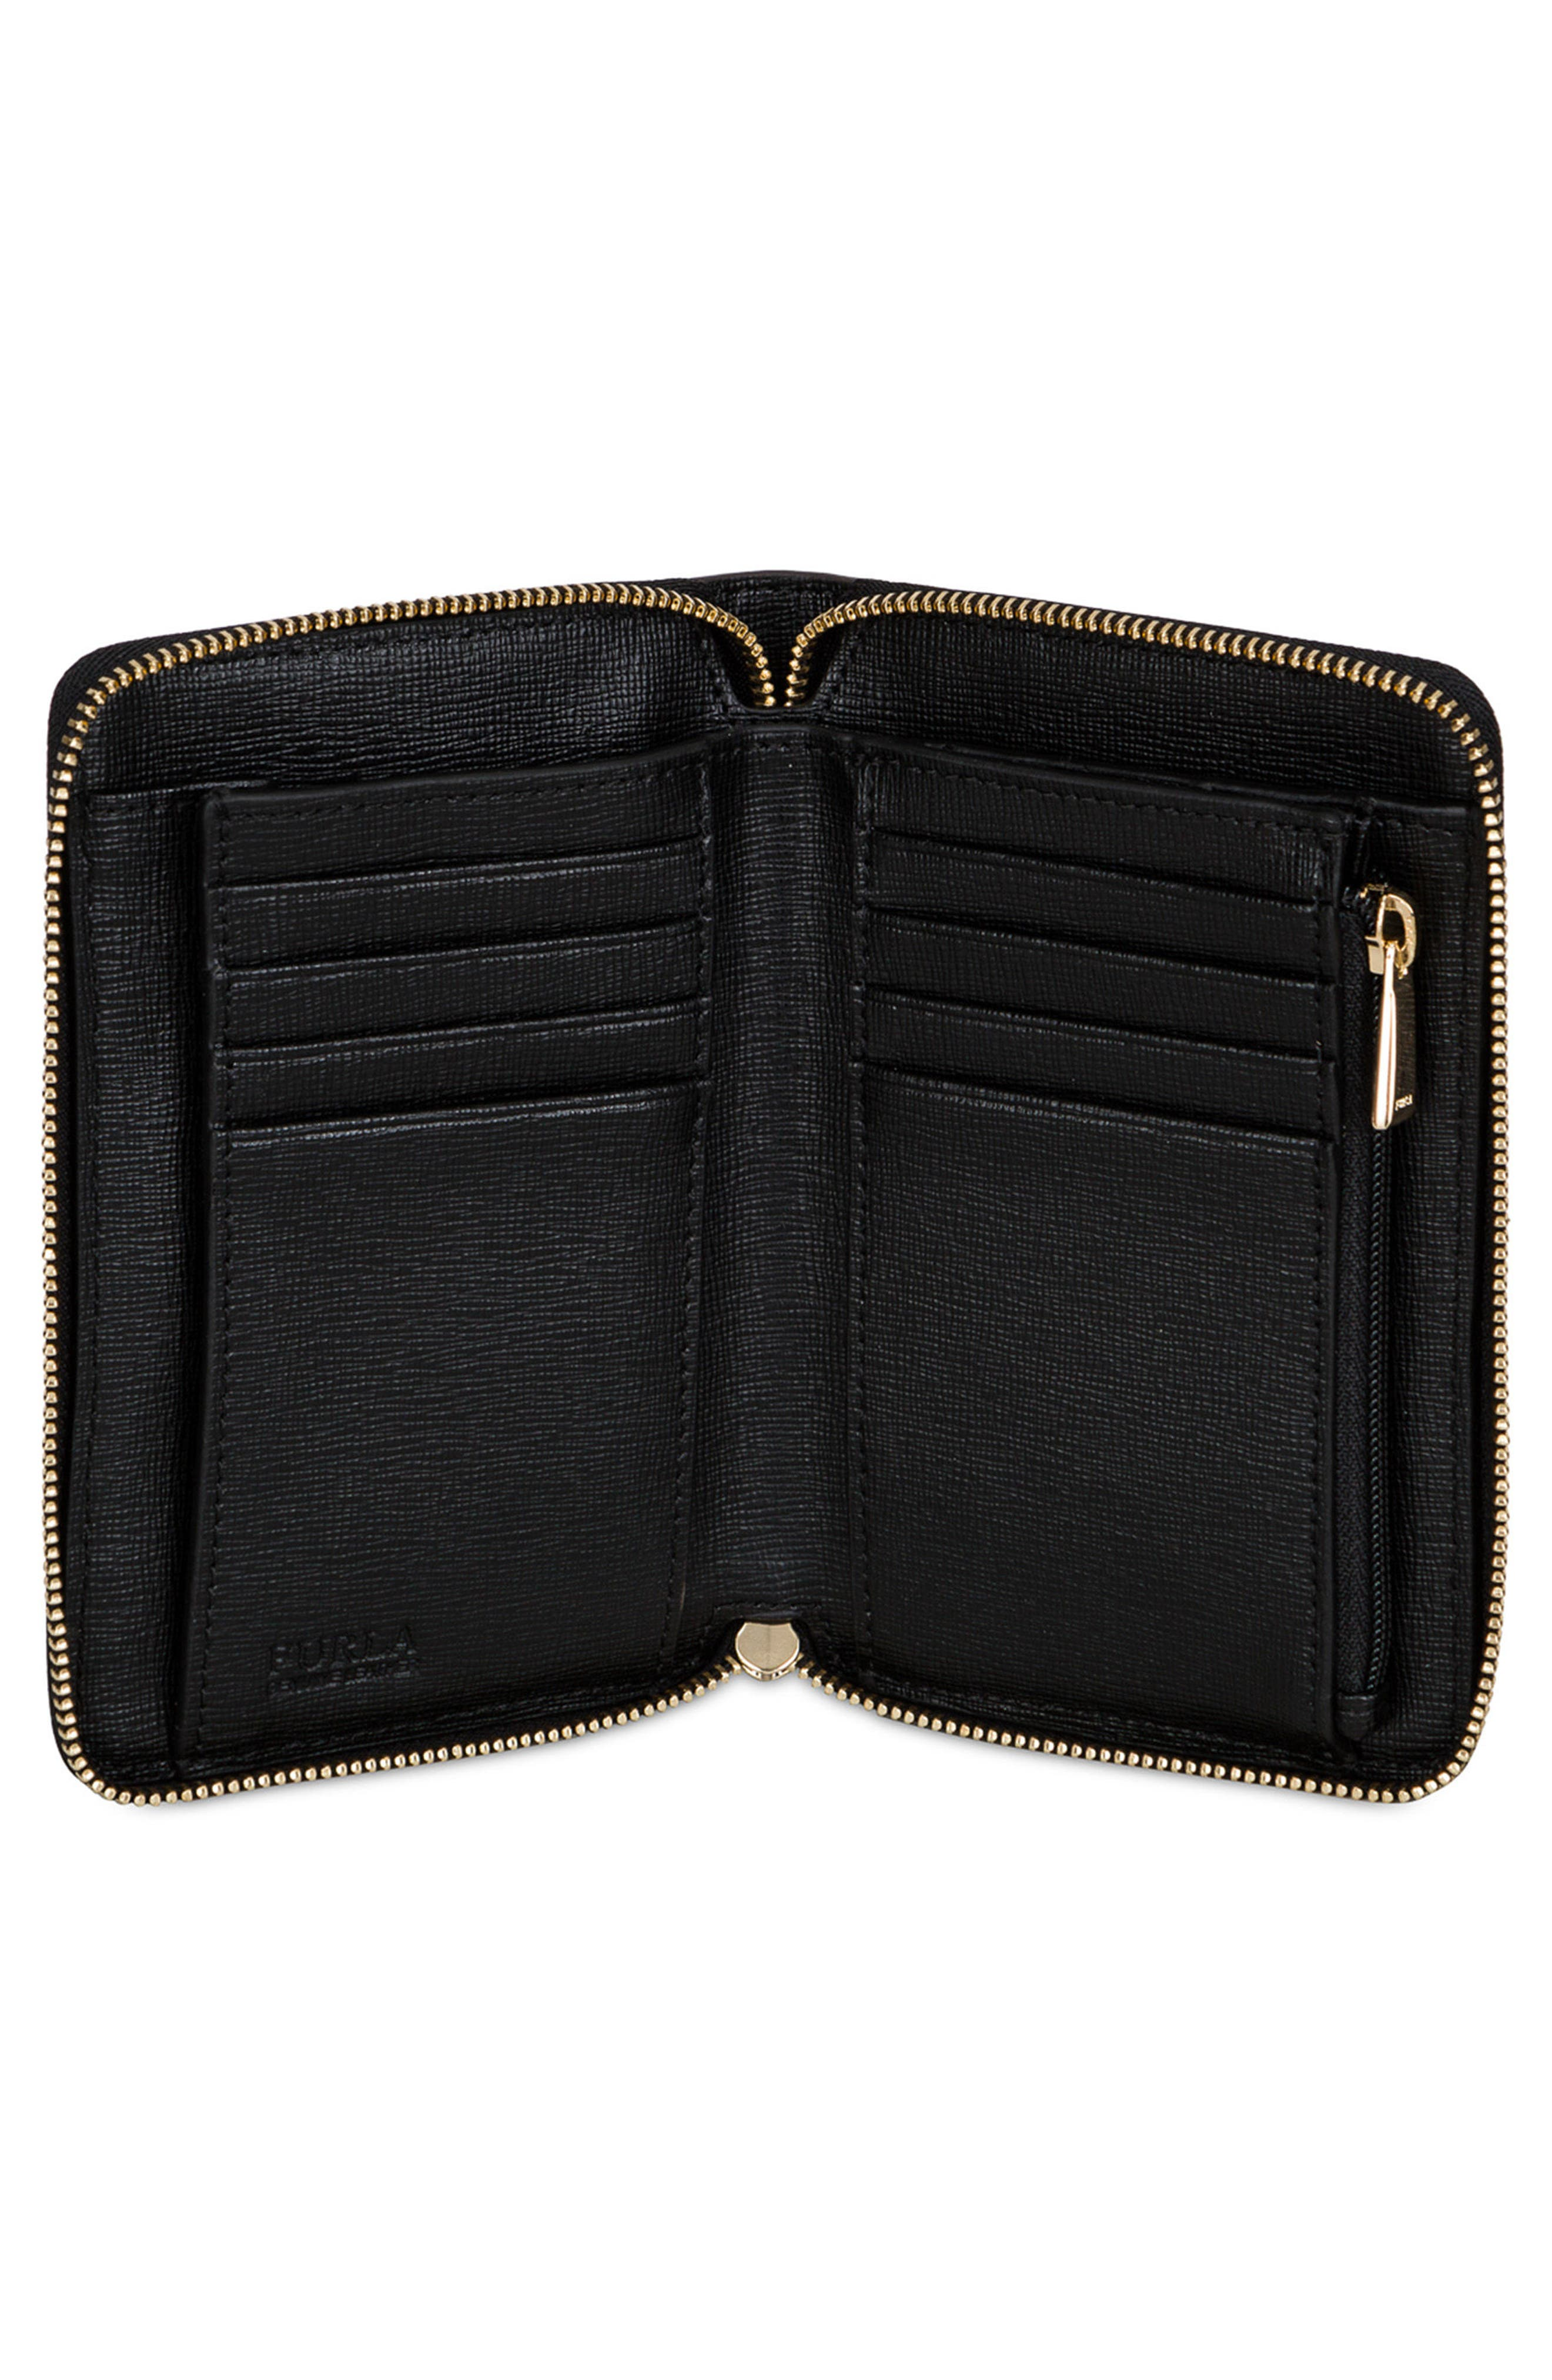 Medium Babylon Saffiano Leather Zip Around Wallet,                             Alternate thumbnail 2, color,                             001